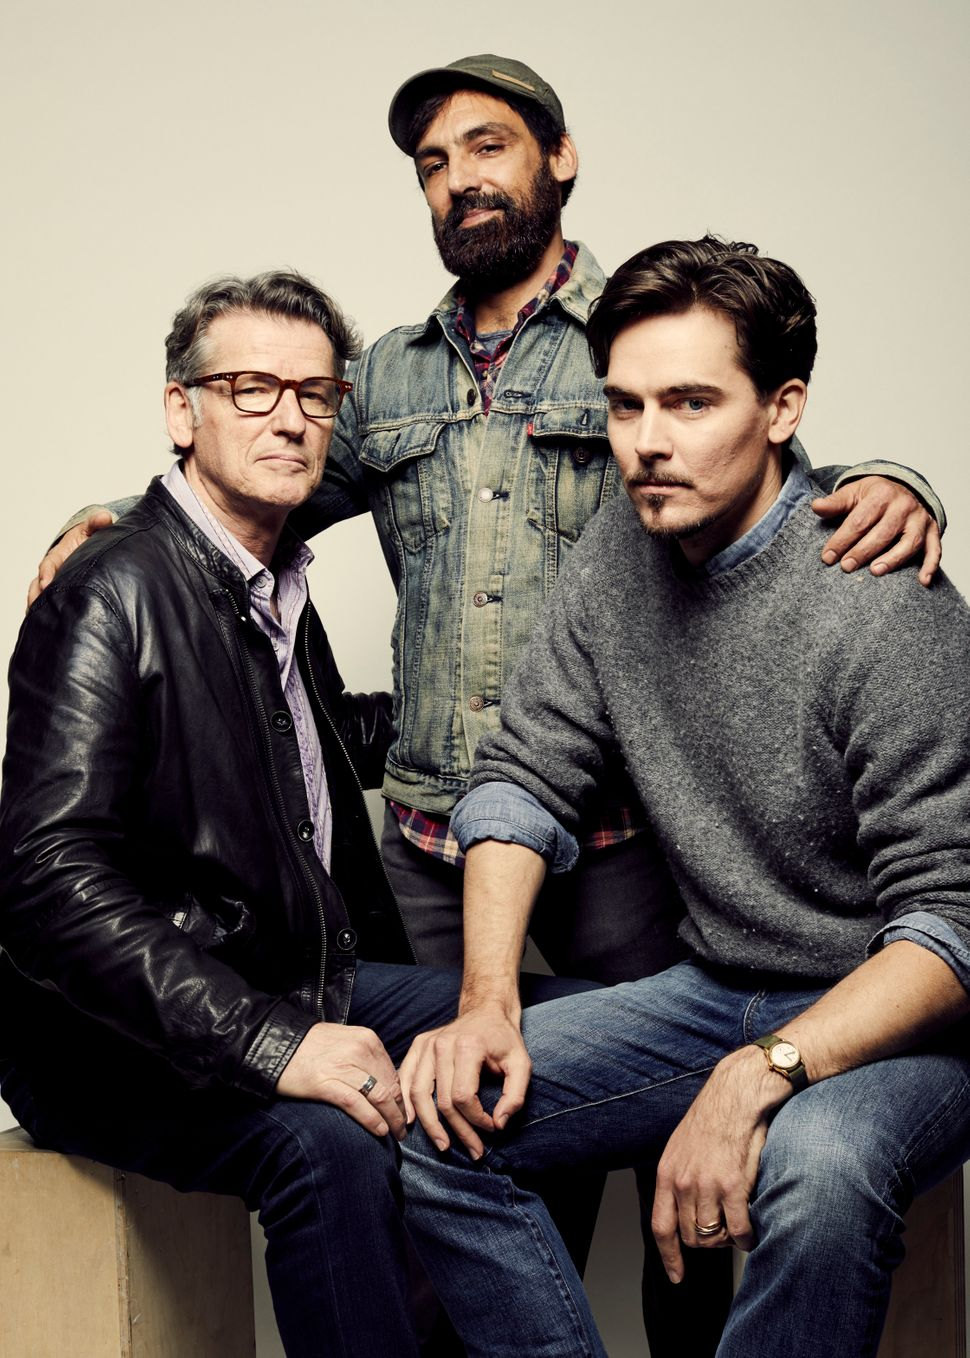 Derik Murray, Matt Amato and Adrian Buitenhuis from 'I Am Heath Ledger' pose at the 2017 Tribeca Film Festival portrait studi